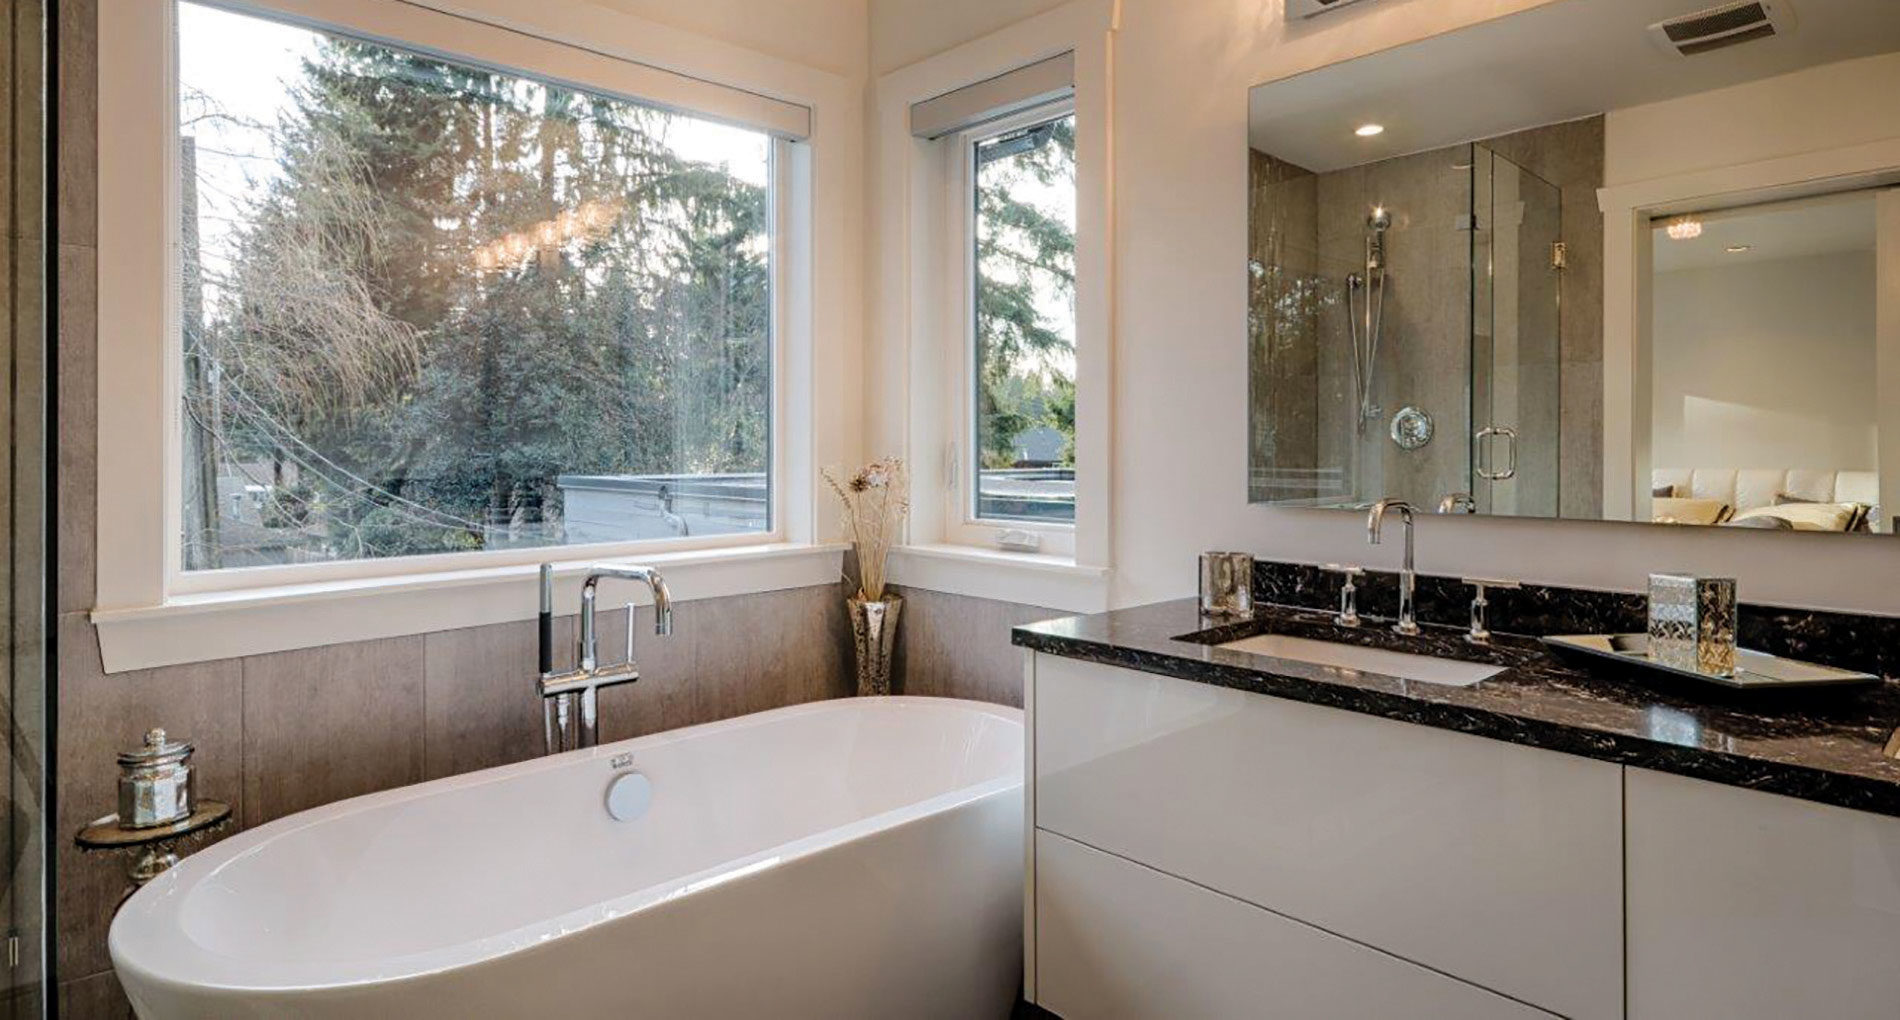 Bathroom Renovation Westnorthvan Canyonblvd Slider